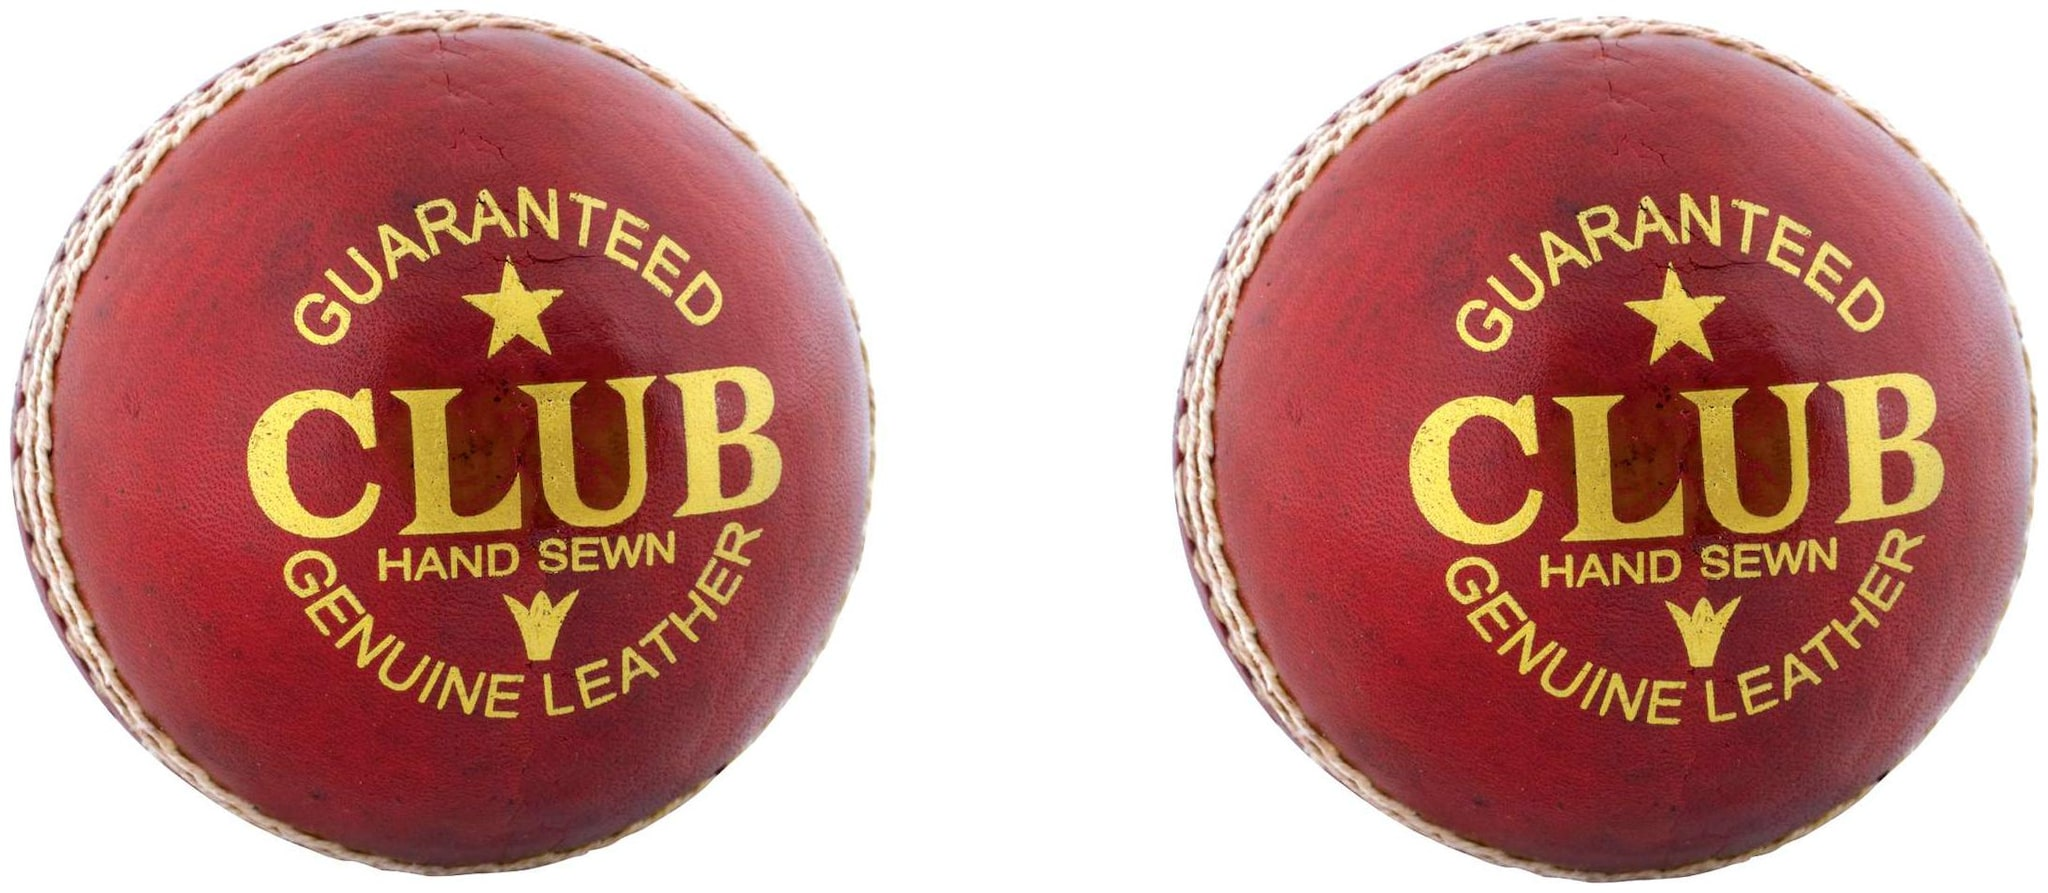 PSE Priya Sports Leather Club Cricket Ball Red Pack of 2  2Part  by Priya Sports Industries